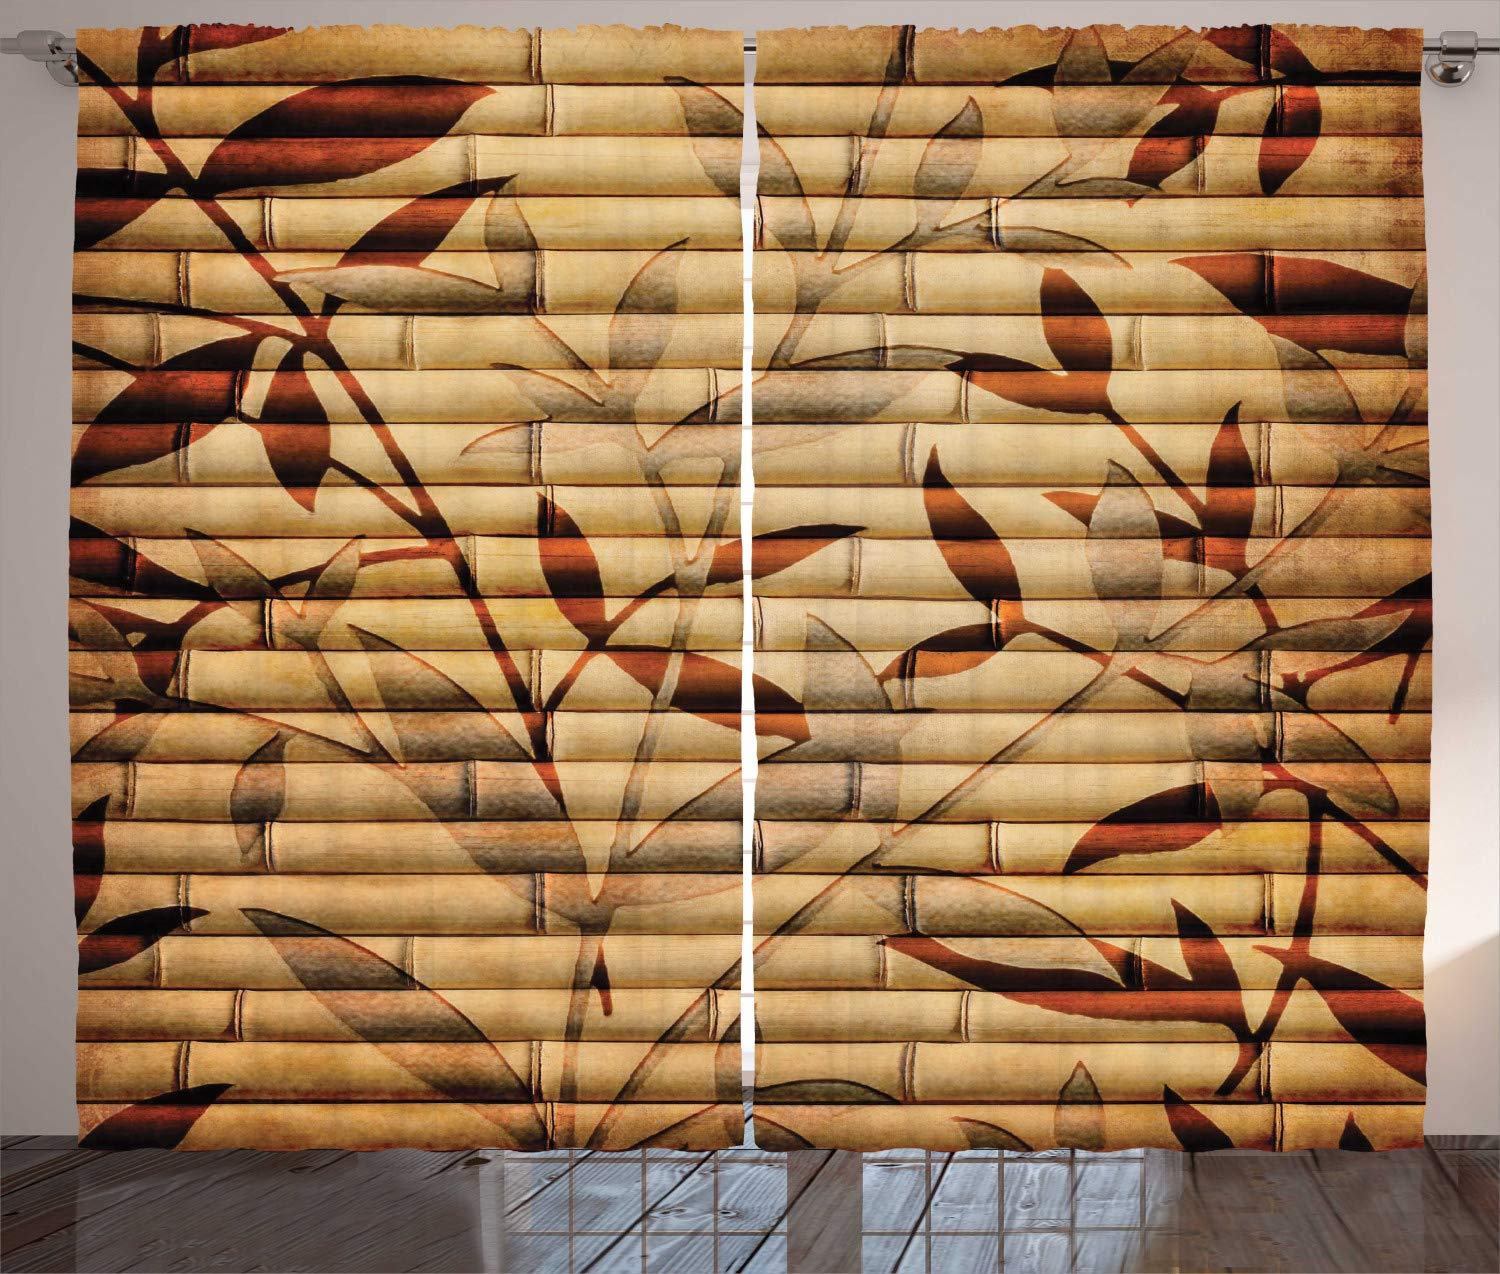 Ambesonne Beige Decor Curtains, Decorative Bamboo Stems and Leaf Figures Over It Spiritual Asian Elements Boho Print, Living Room Bedroom Decor, 2 Panel Set, 108 W X 84 L Inches, Brown Tan Beige